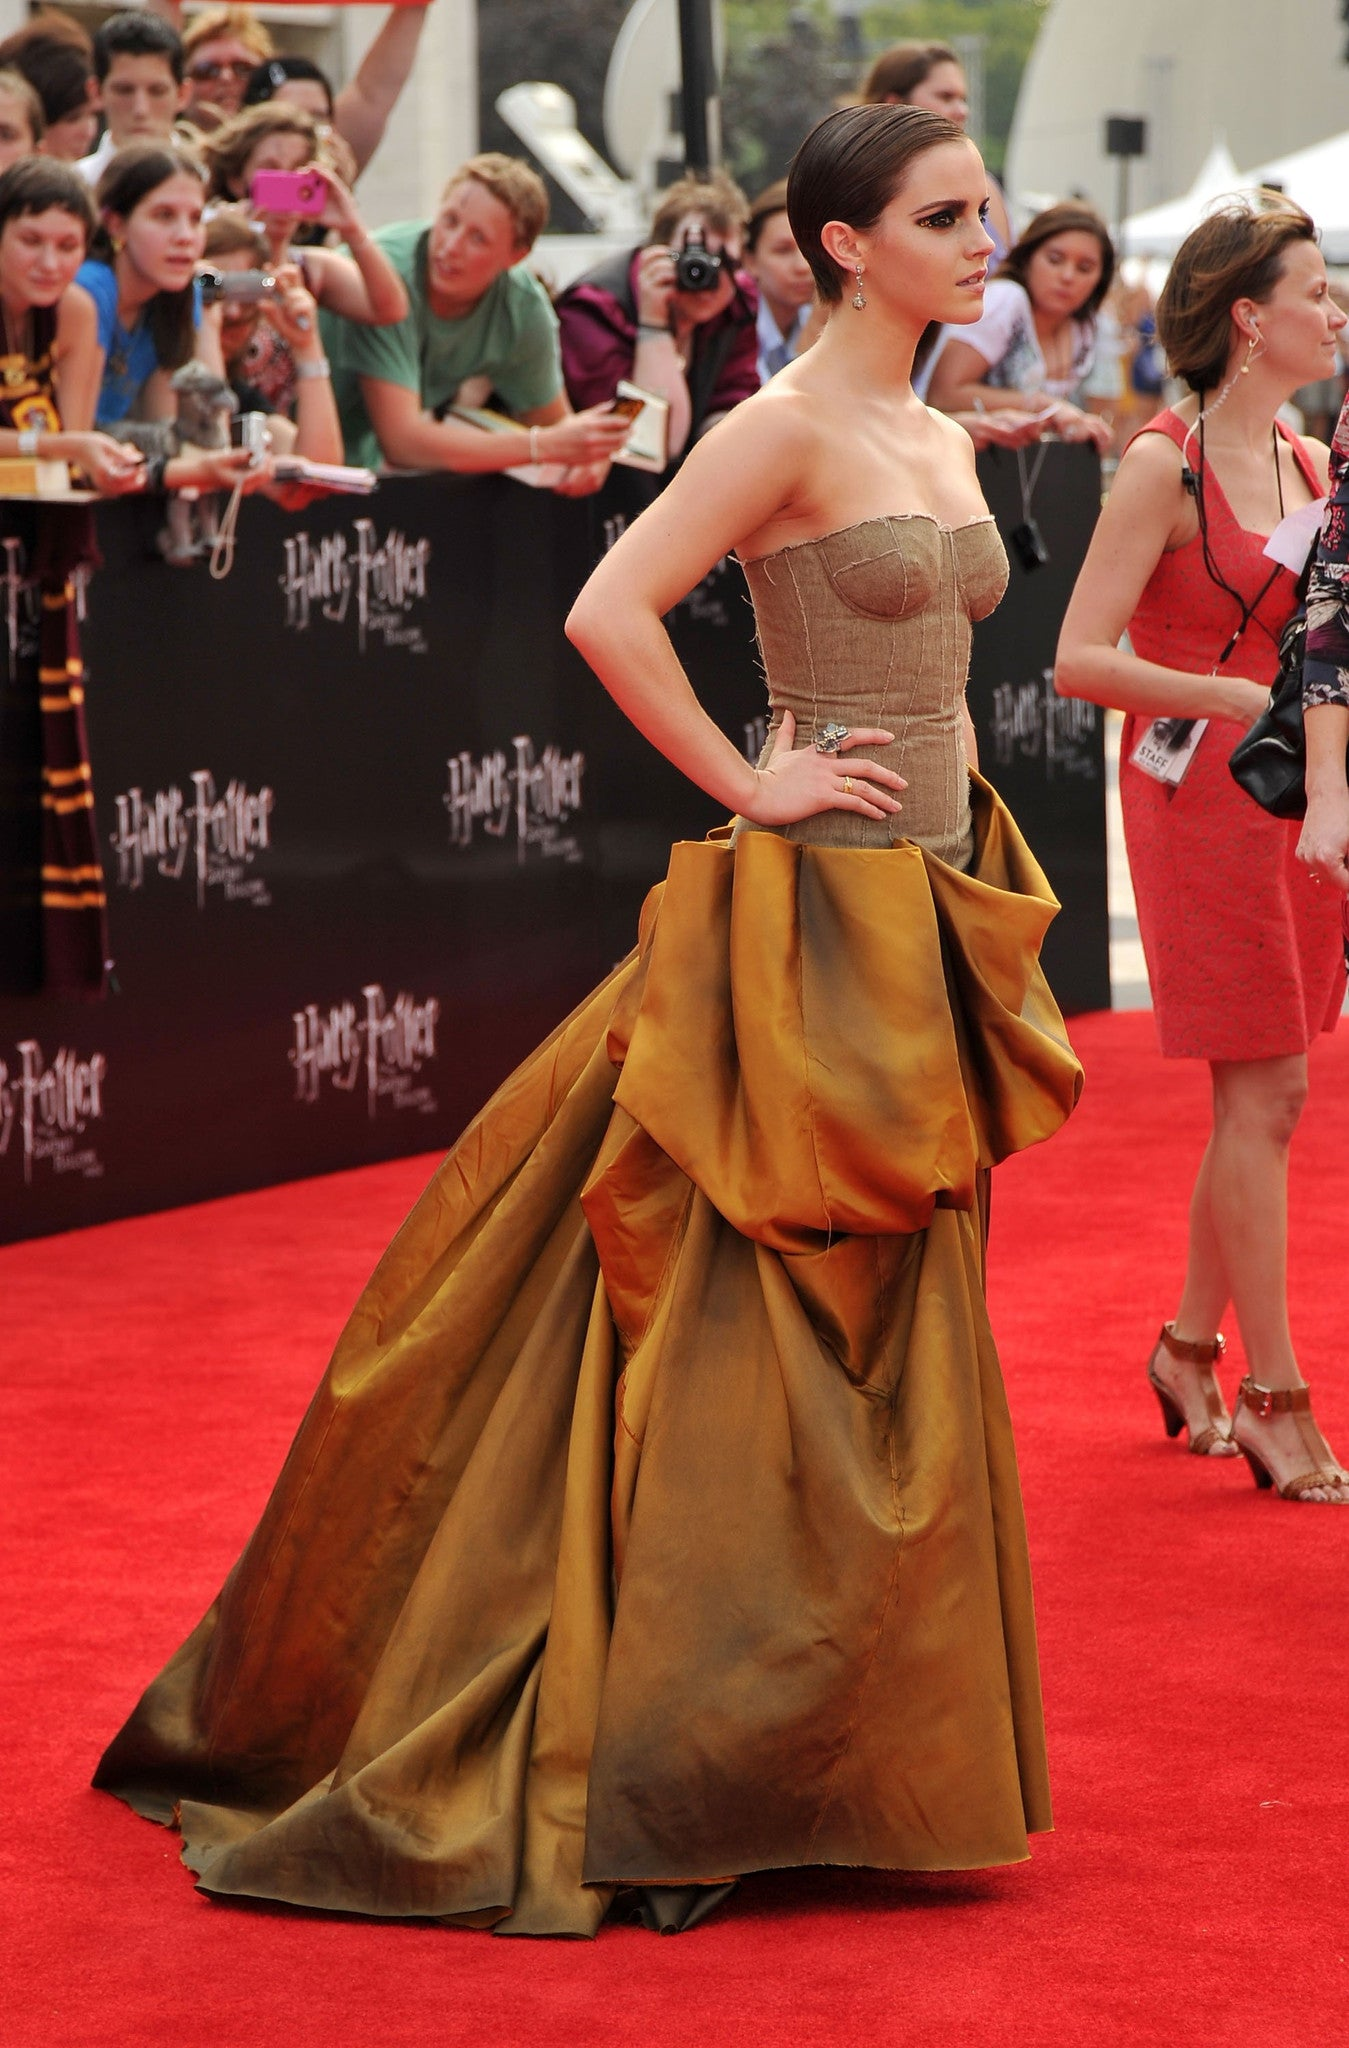 Emma Watson - Harry Potter and the Deathly Hallows premiere